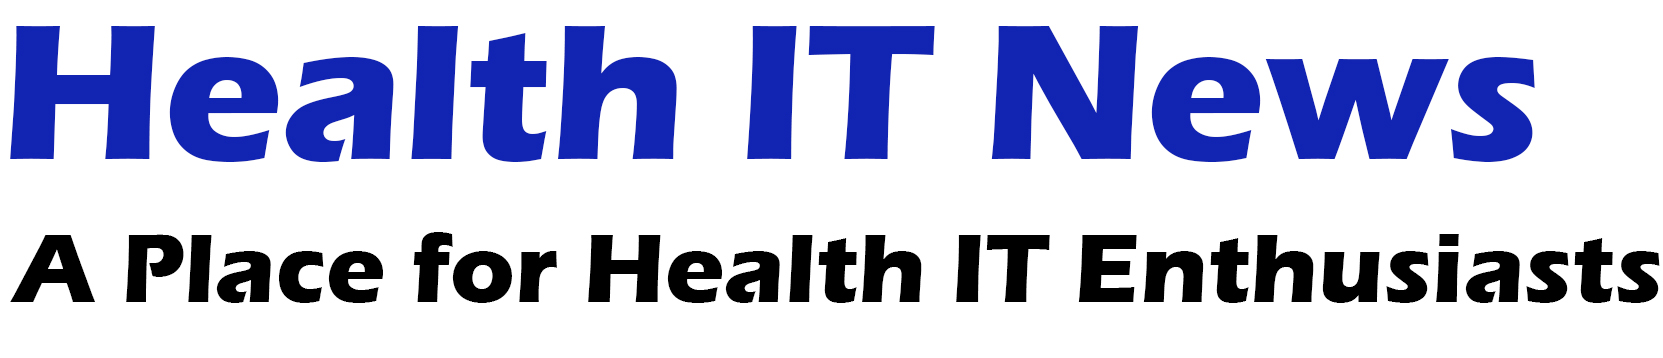 Health IT News